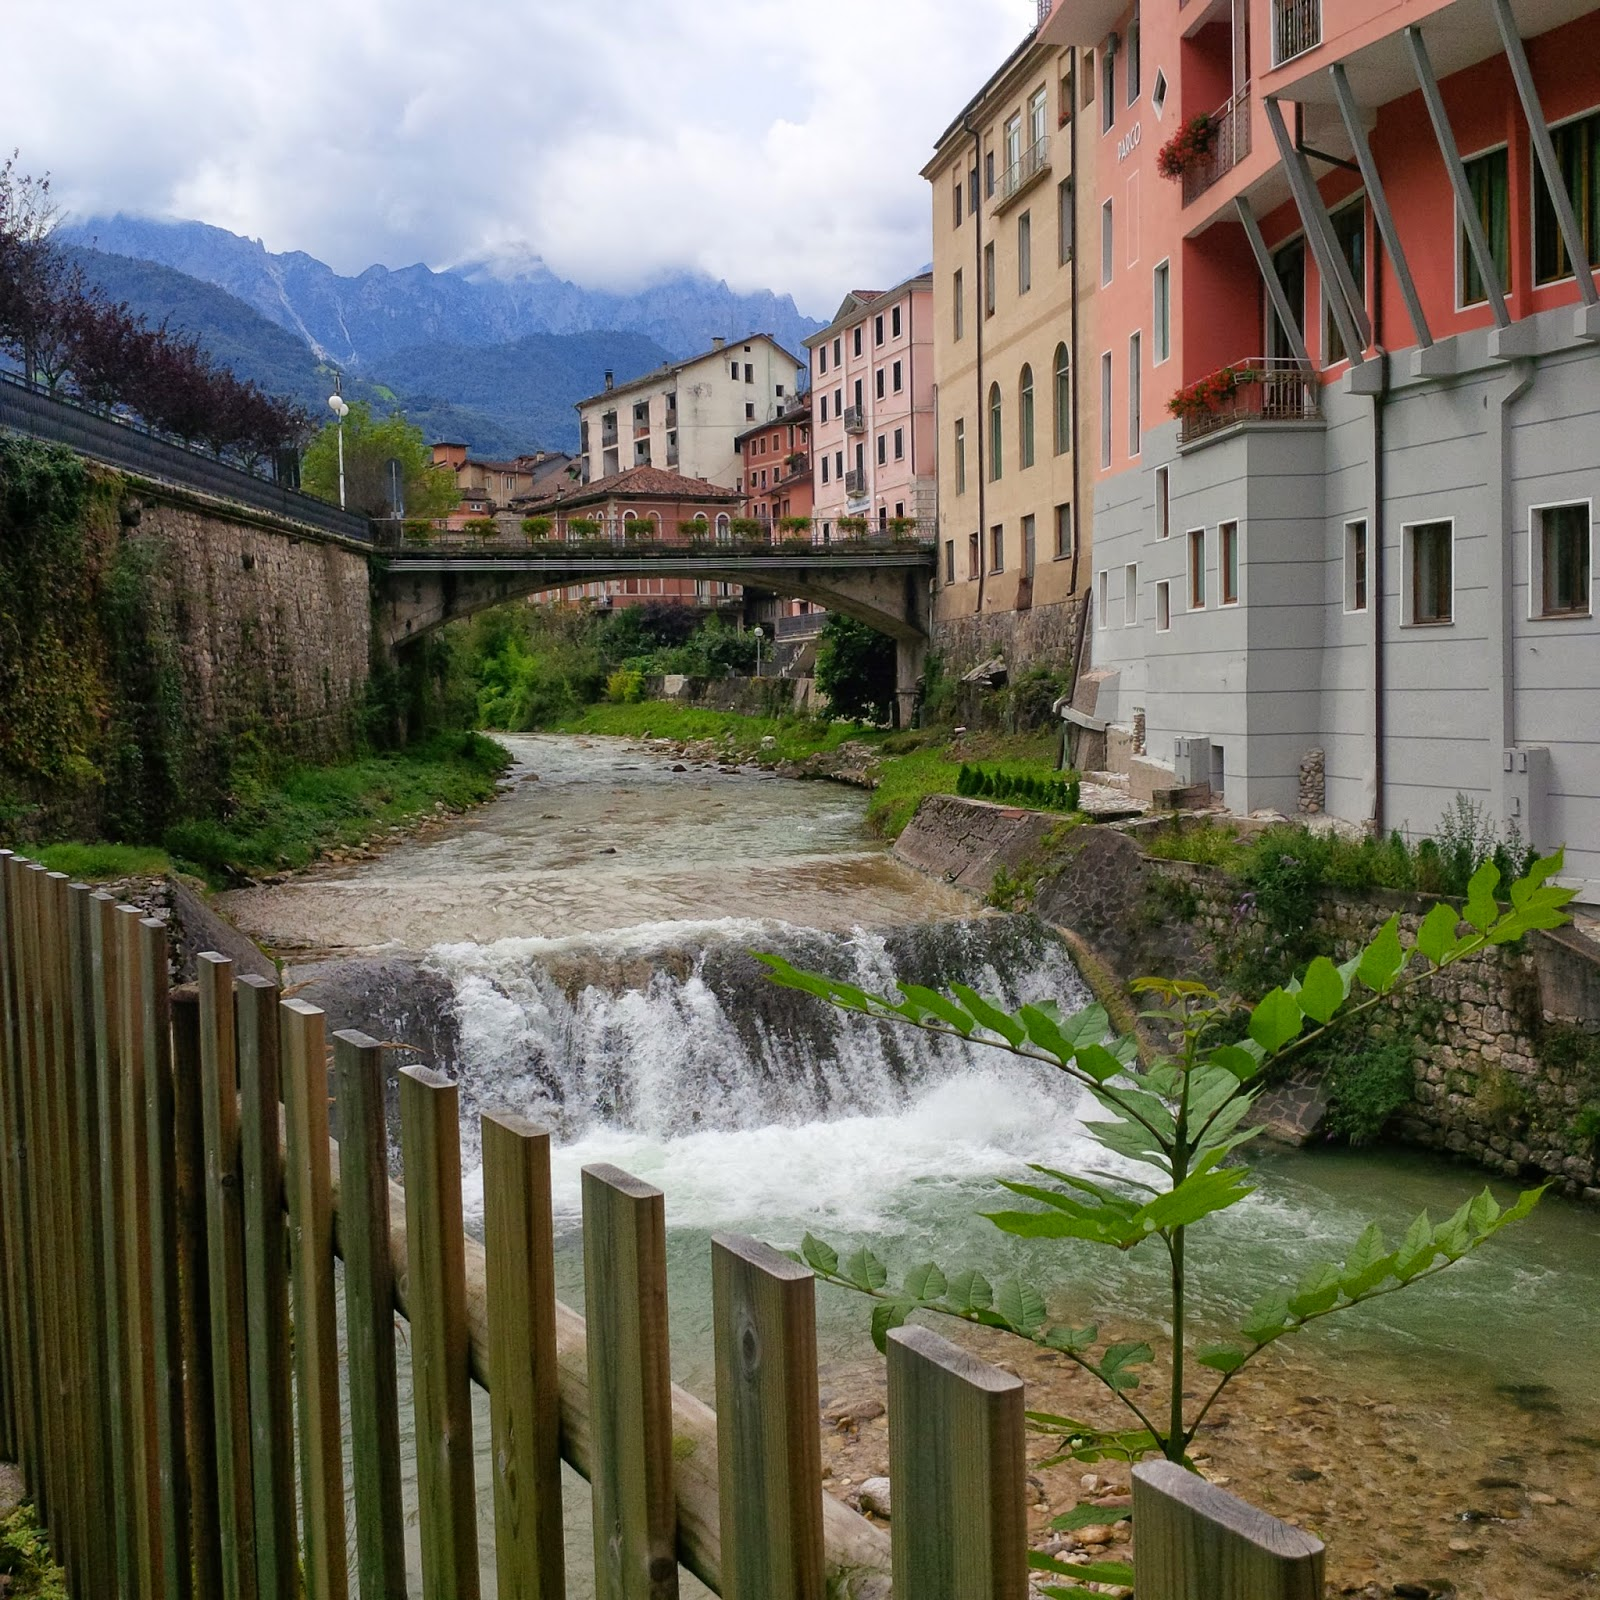 A wild stream passes by the playground in Recoaro Terme in Italy